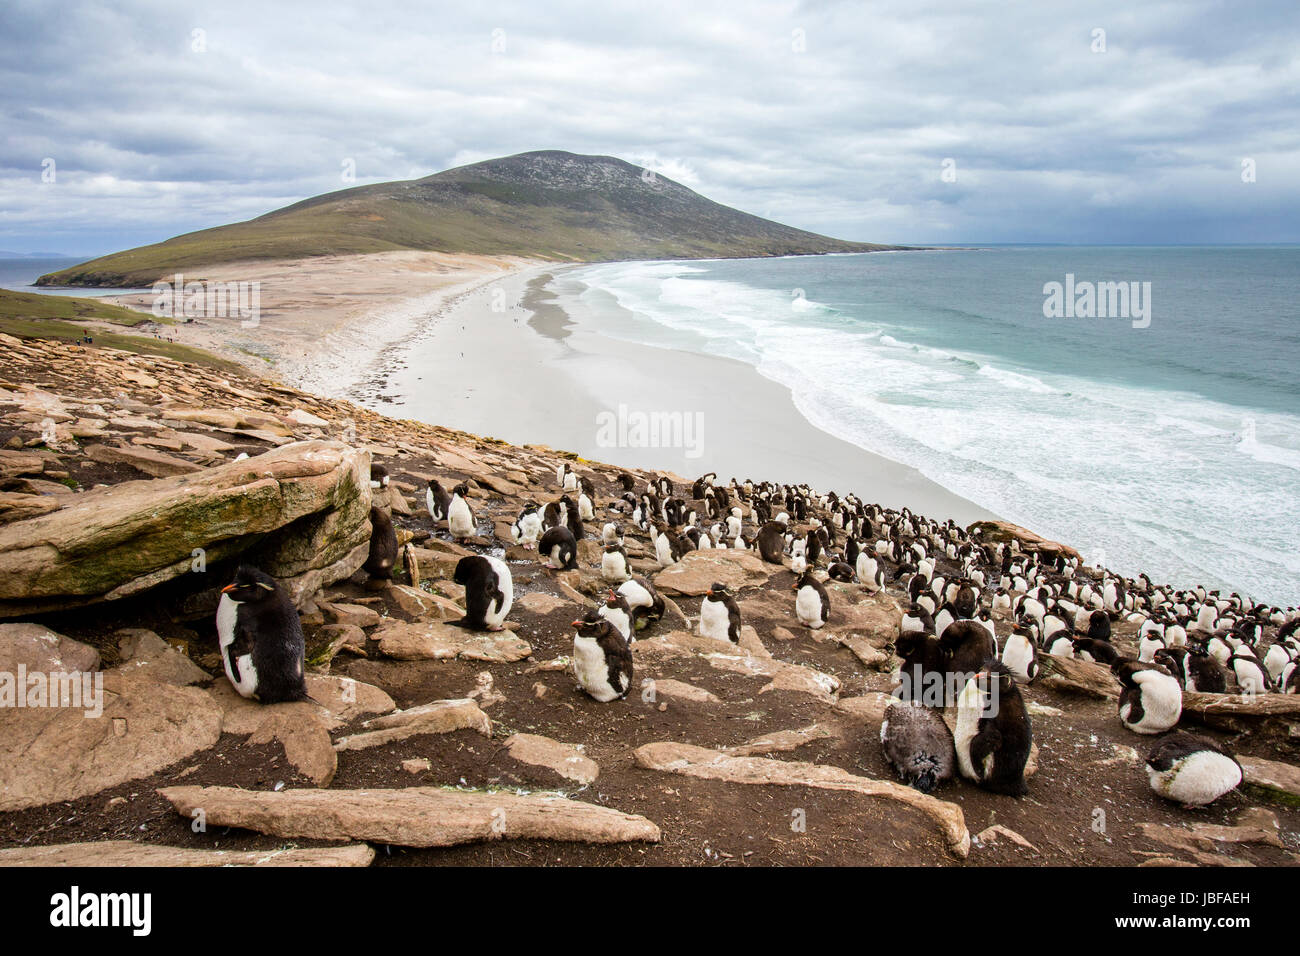 Rockhopper penguins on Saunders Island, Falkland Islands - Stock Image